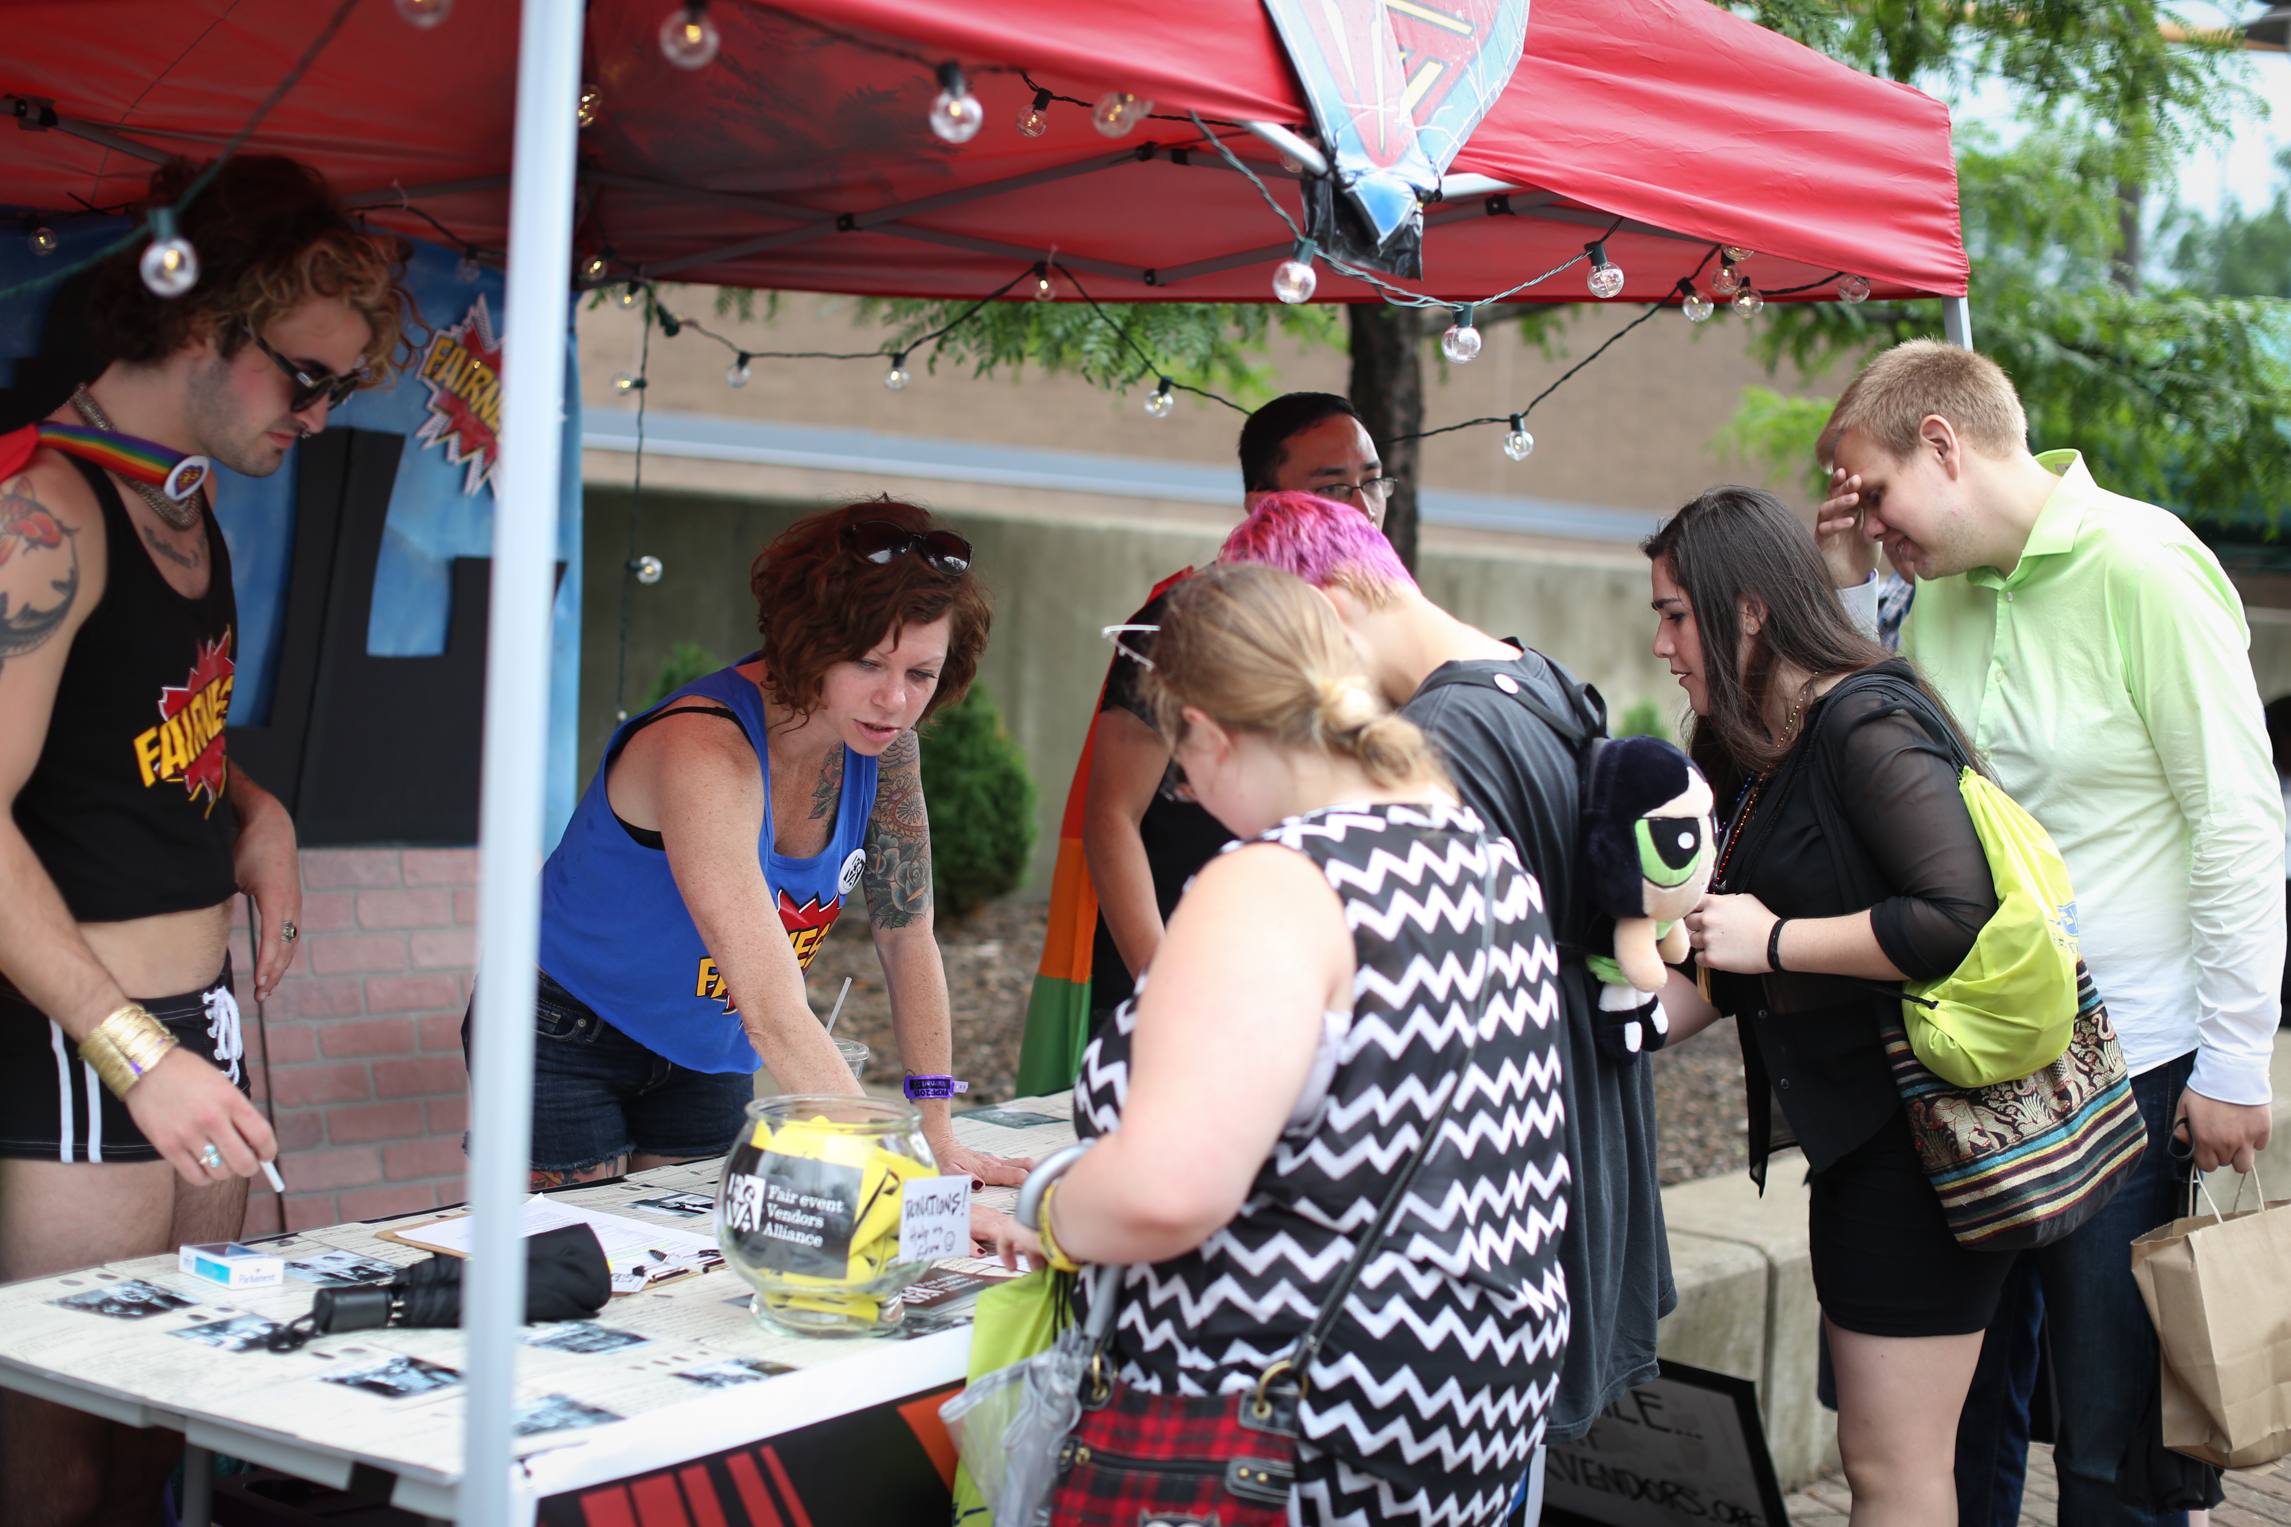 PRIDE W-FEVA 2015 EDITED CRYSTAL LUDWICK PHOTO (14 of 83).jpg